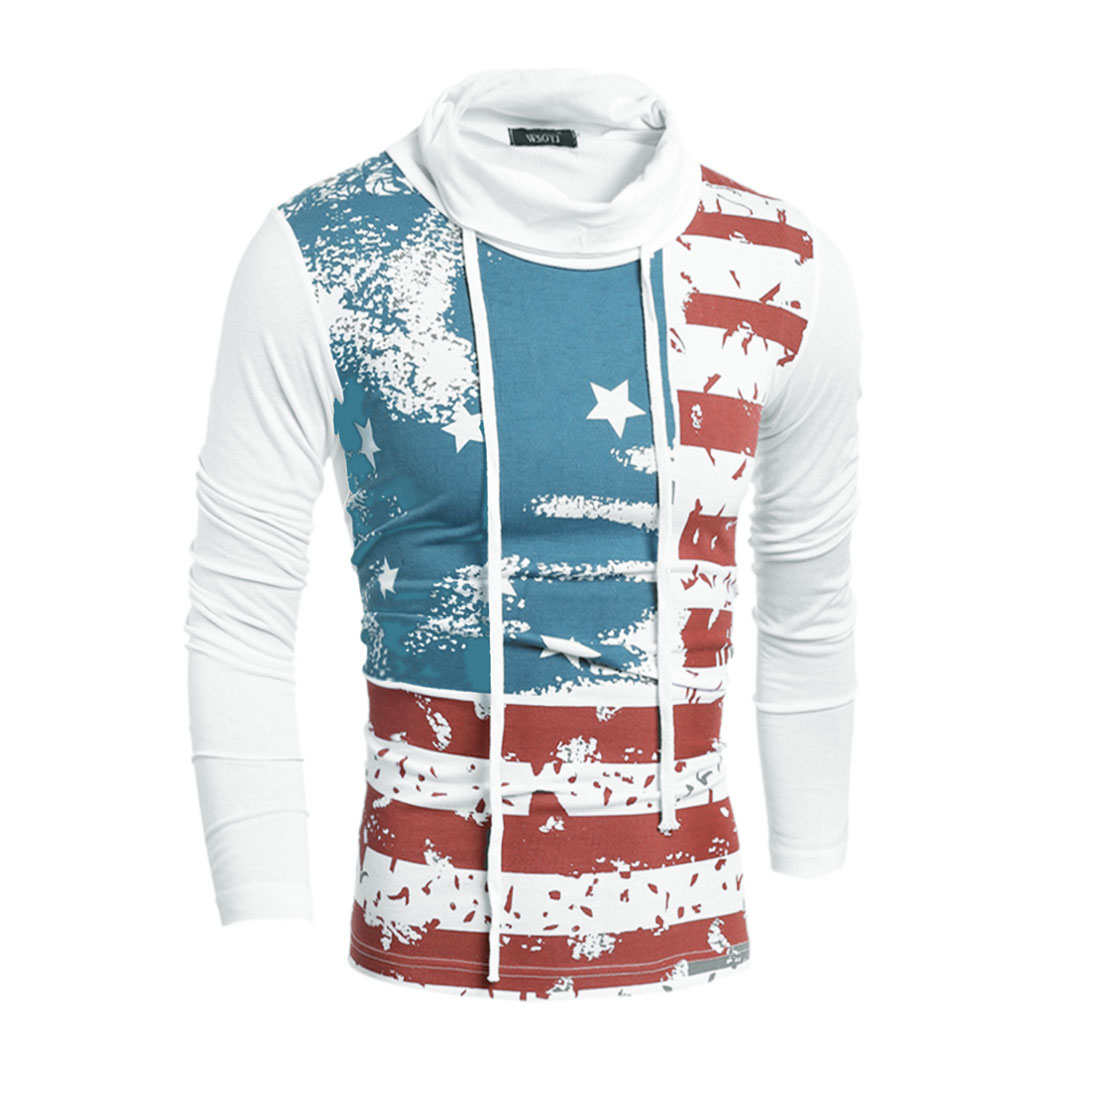 Men's Drawstring Turtle Neck Stripes Stars T-Shirt White S